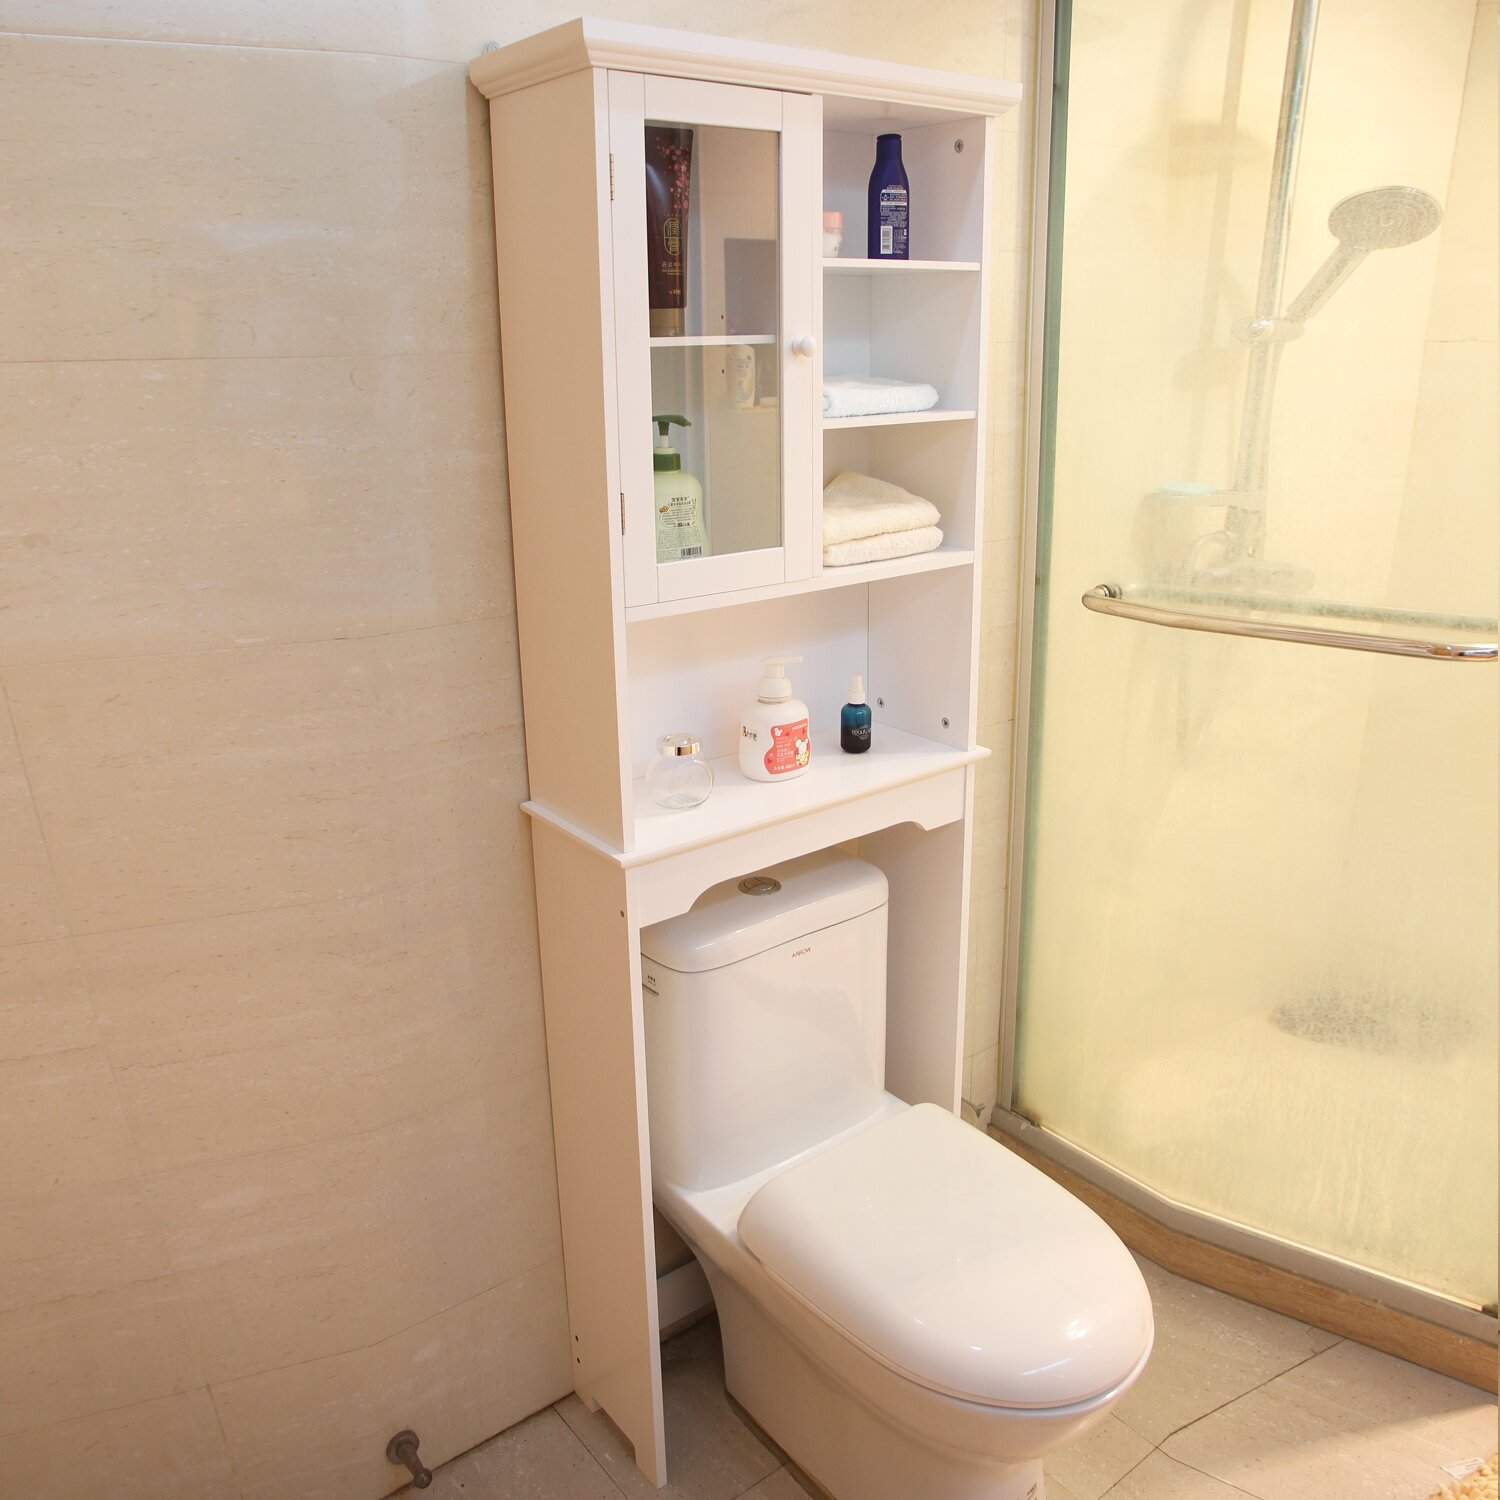 Adecotrading 24 x 68 5 free standing over the toilet for Bathroom cabinets reviews